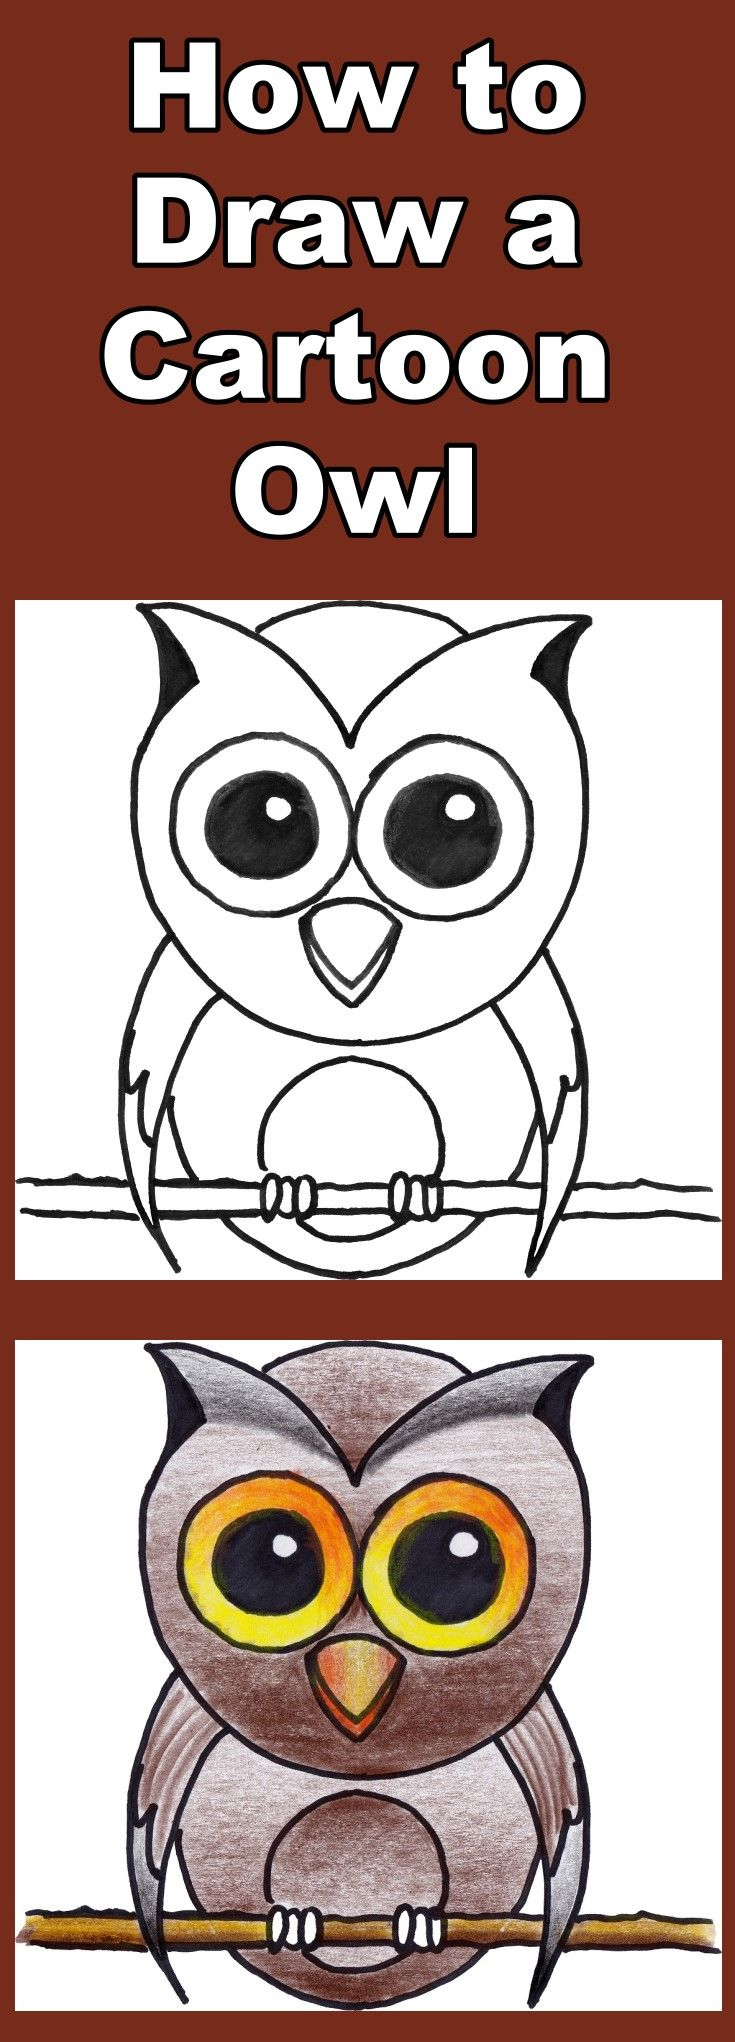 Follow the video as you learn how to draw and then color this wise old cartoon owl. Includes a free downloadable coloring page.